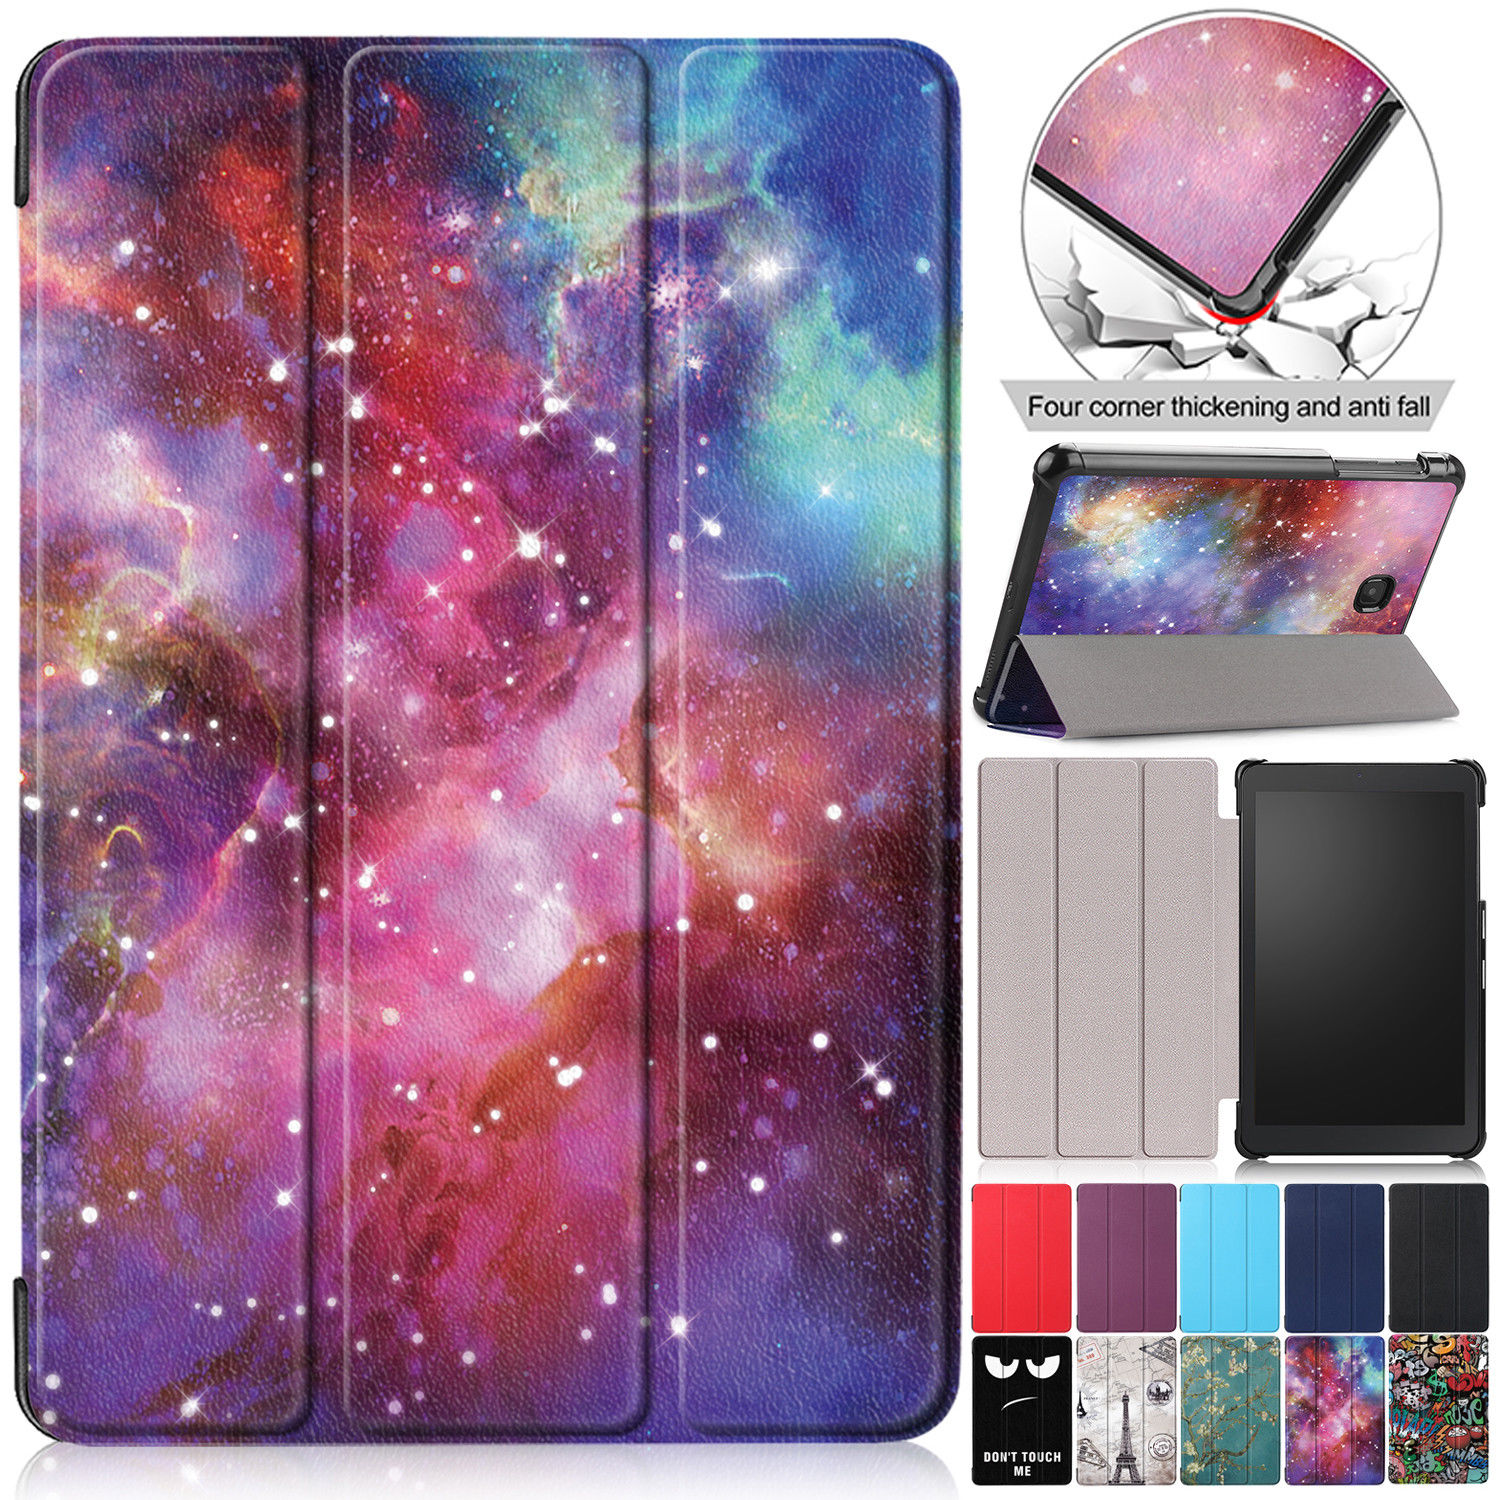 Patterned Leather Case For Samsung Galaxy Tab A 8.0 2018 SM-T387 T387 Cover Fold Shockproof Case For Samsung Tab A 8.0 2018